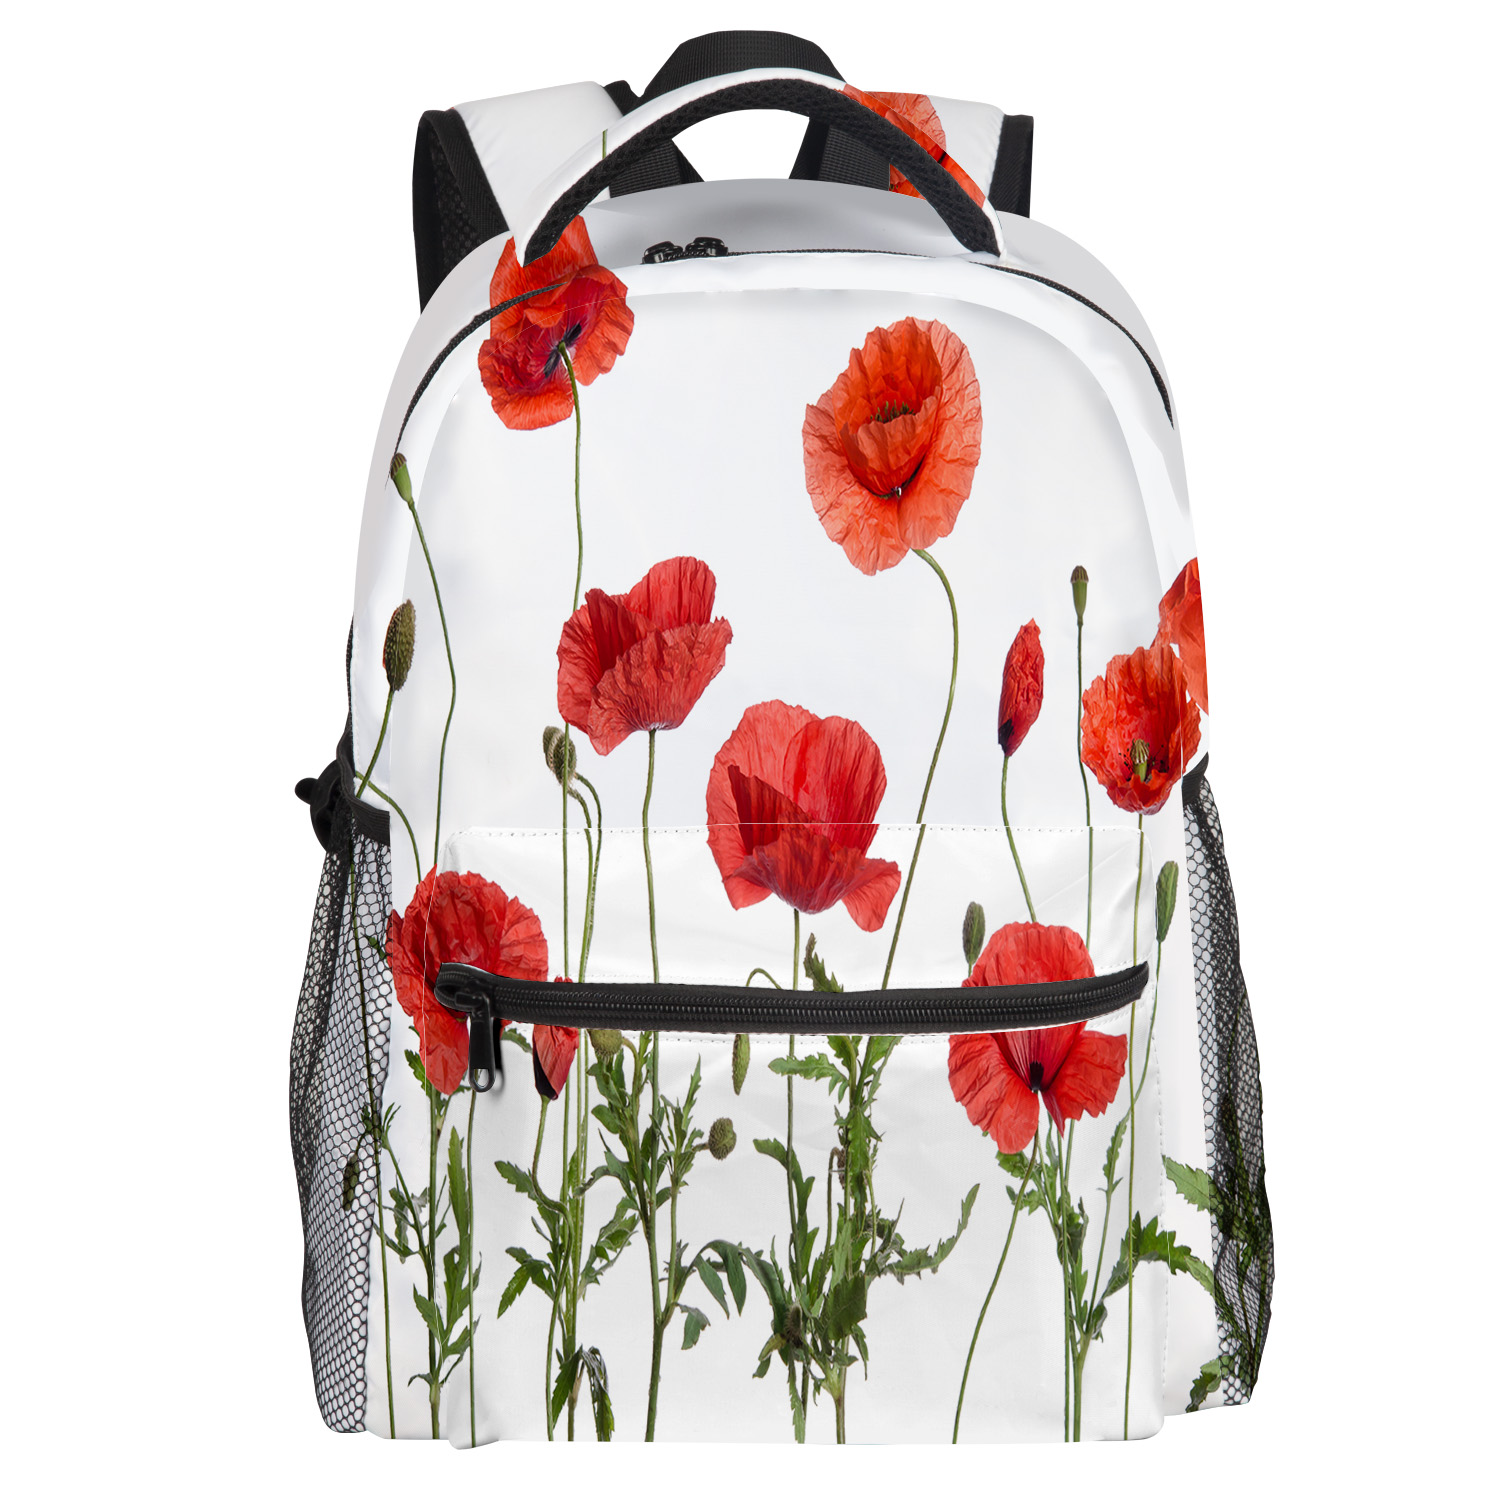 Red Corn Poppy Backpack College Students Wear Resistance Laptop Backpack Book Bag Casual Sports Bags School Bag